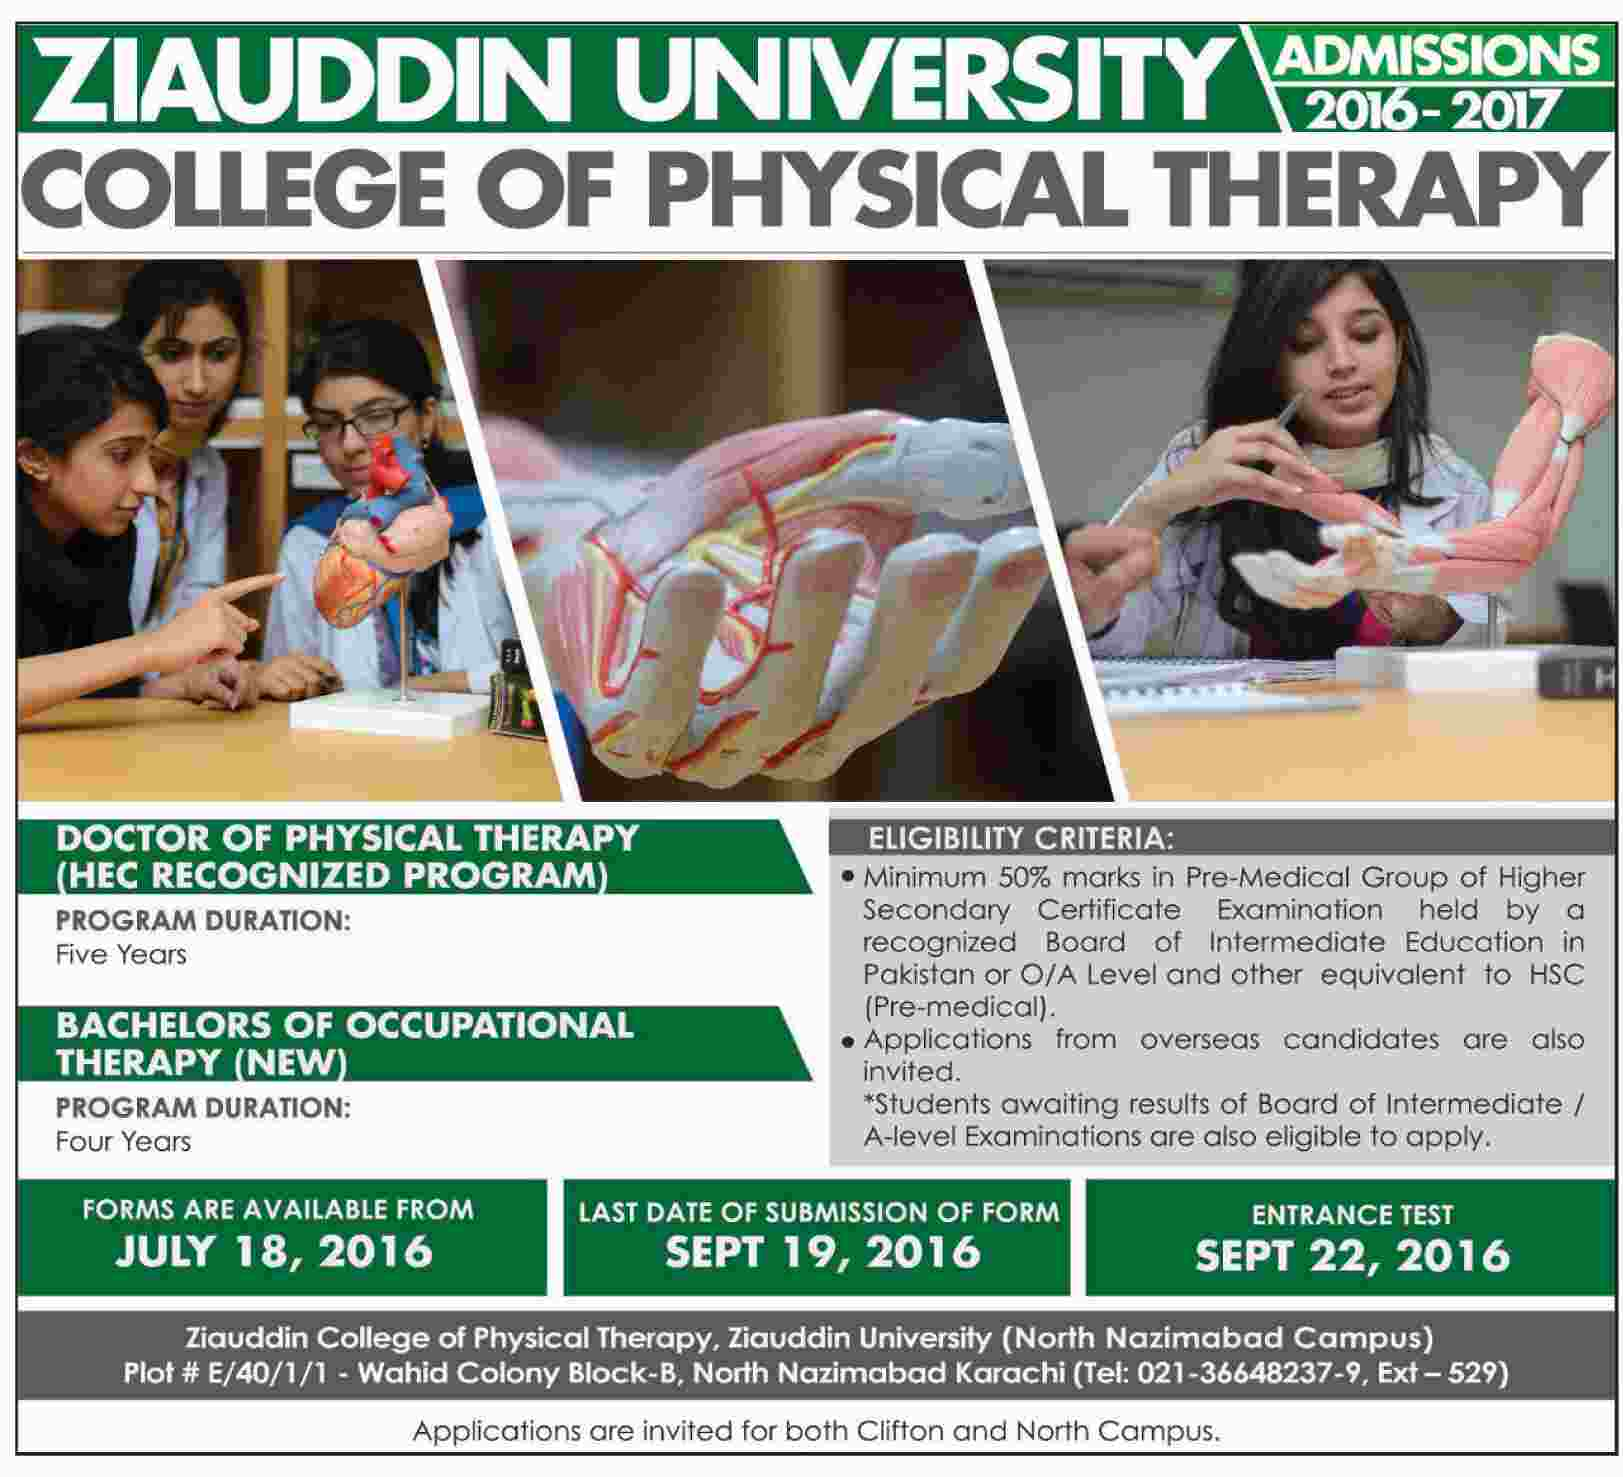 College for physical therapy - Admission In Ziauddin University College Of Physical Therapy 15 Aug 2016